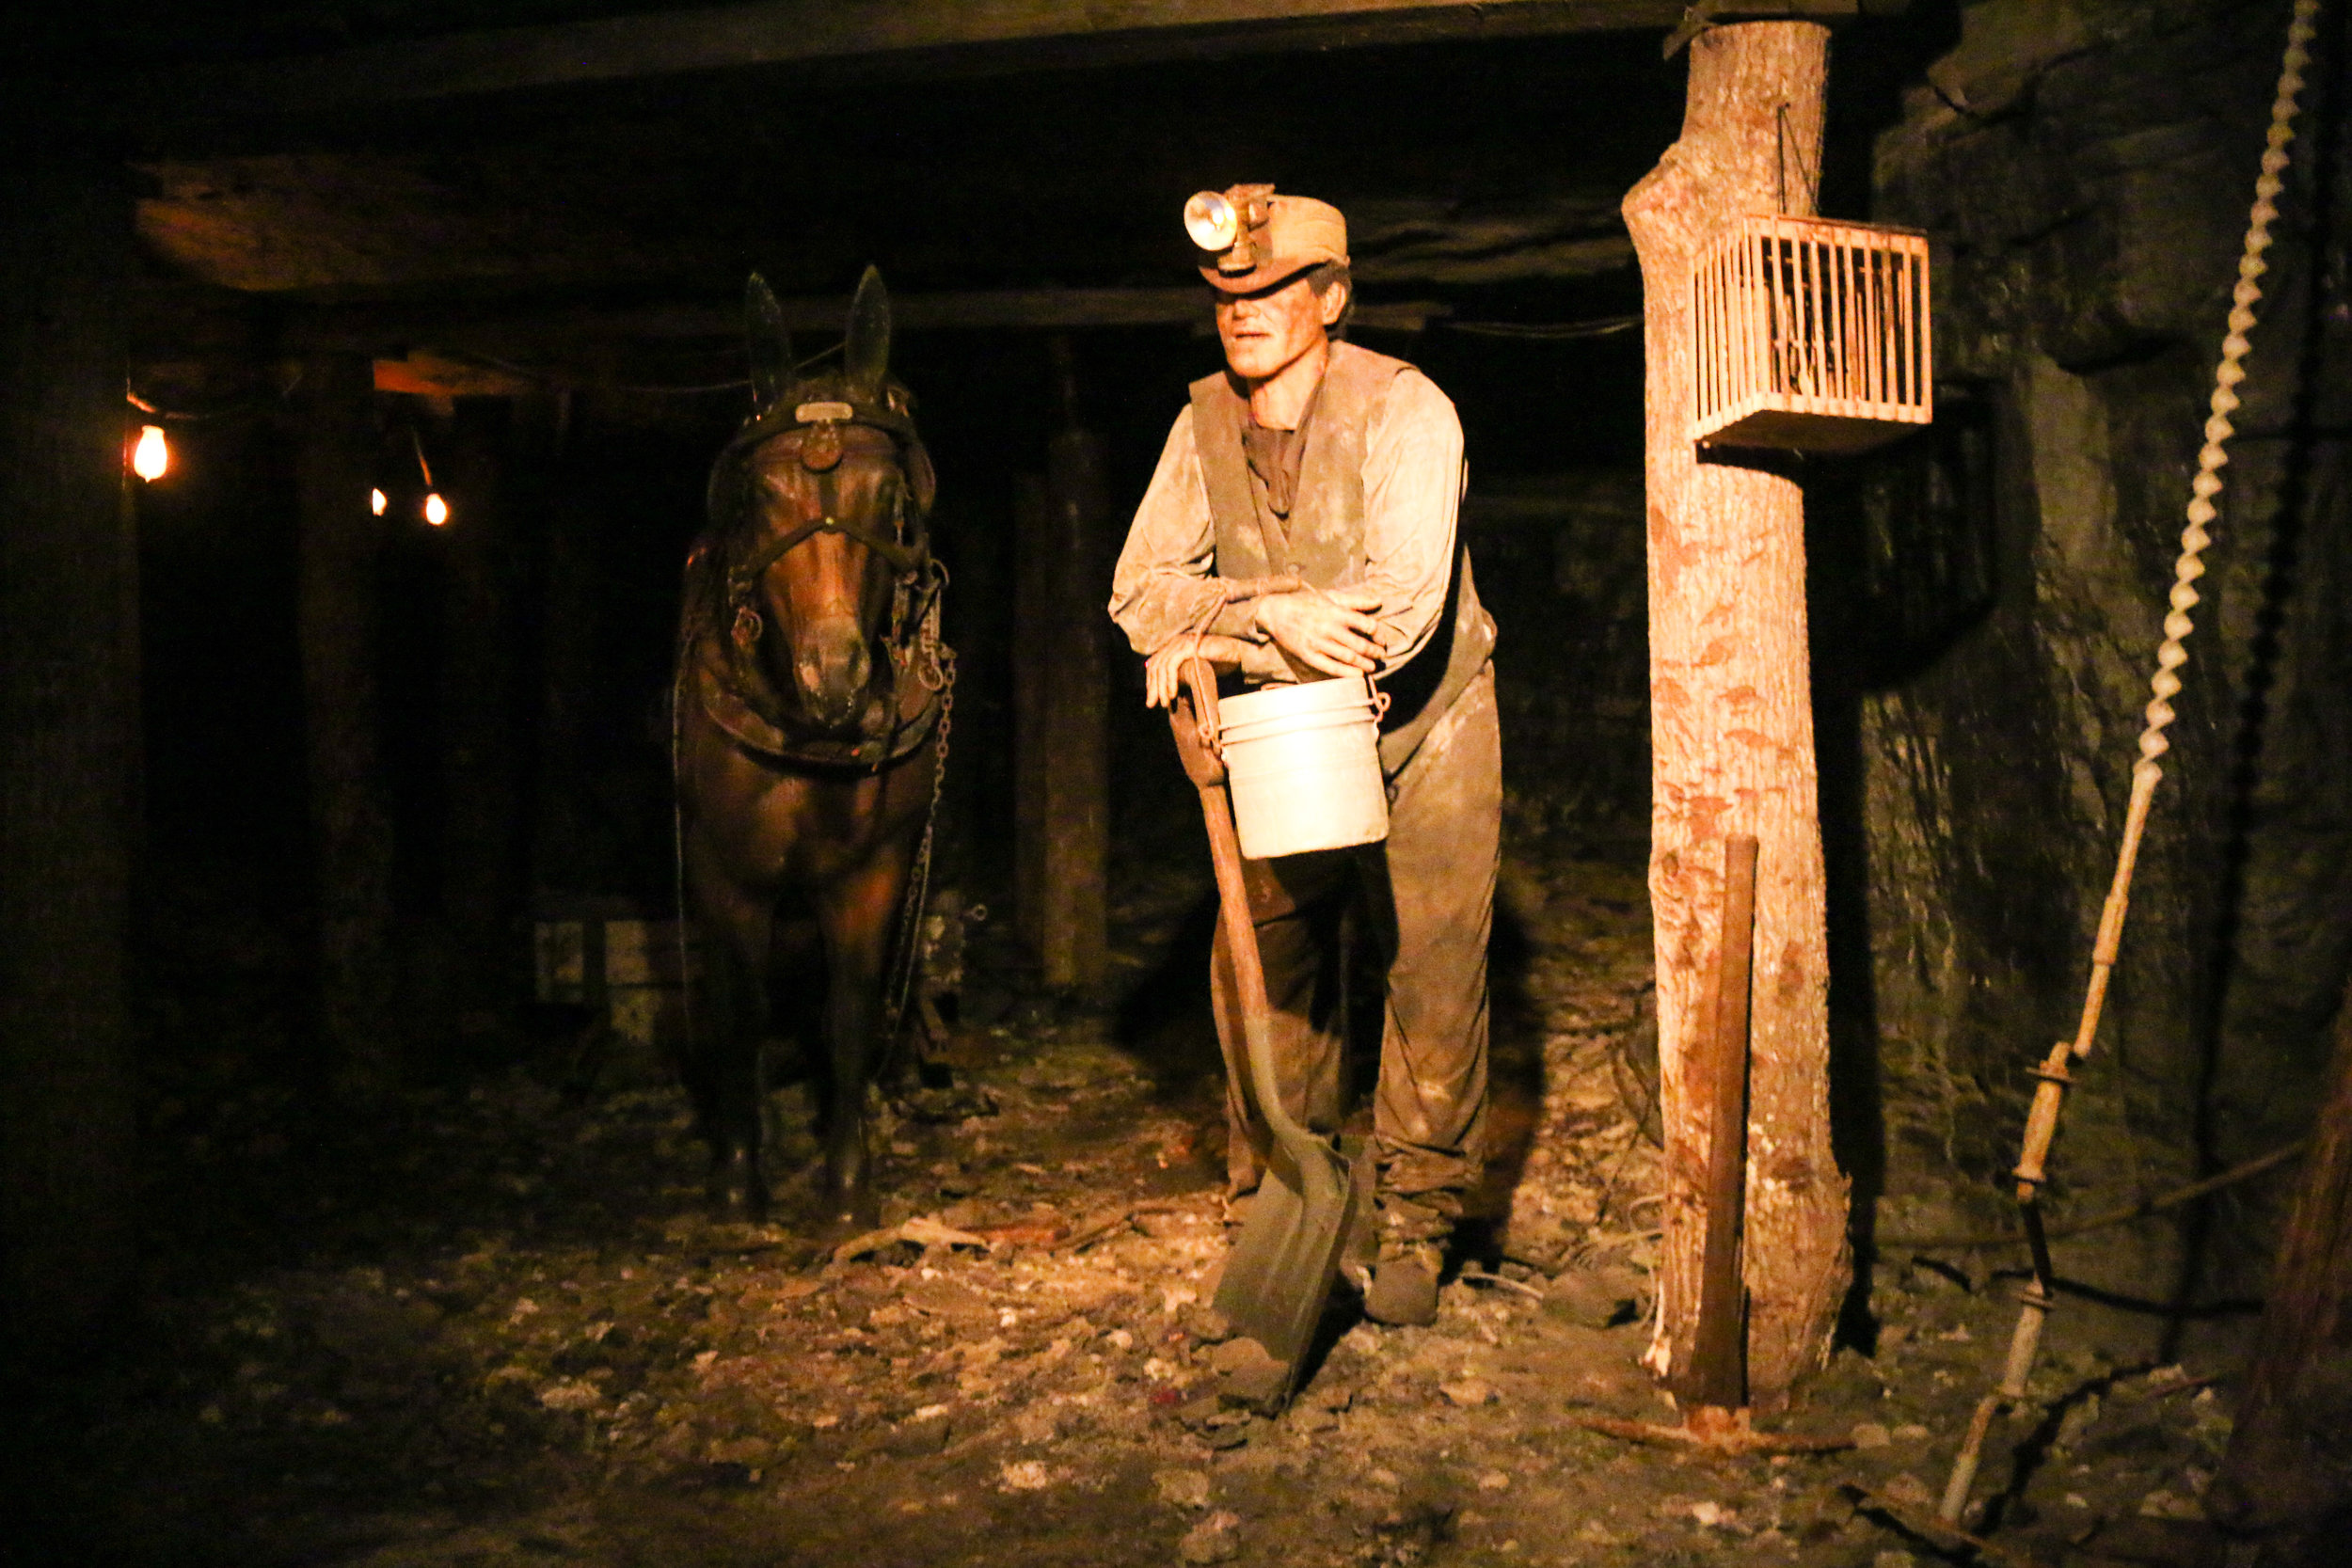 Portal 31 Mine - Tourism is One of the Waves of the Future for Coal Country